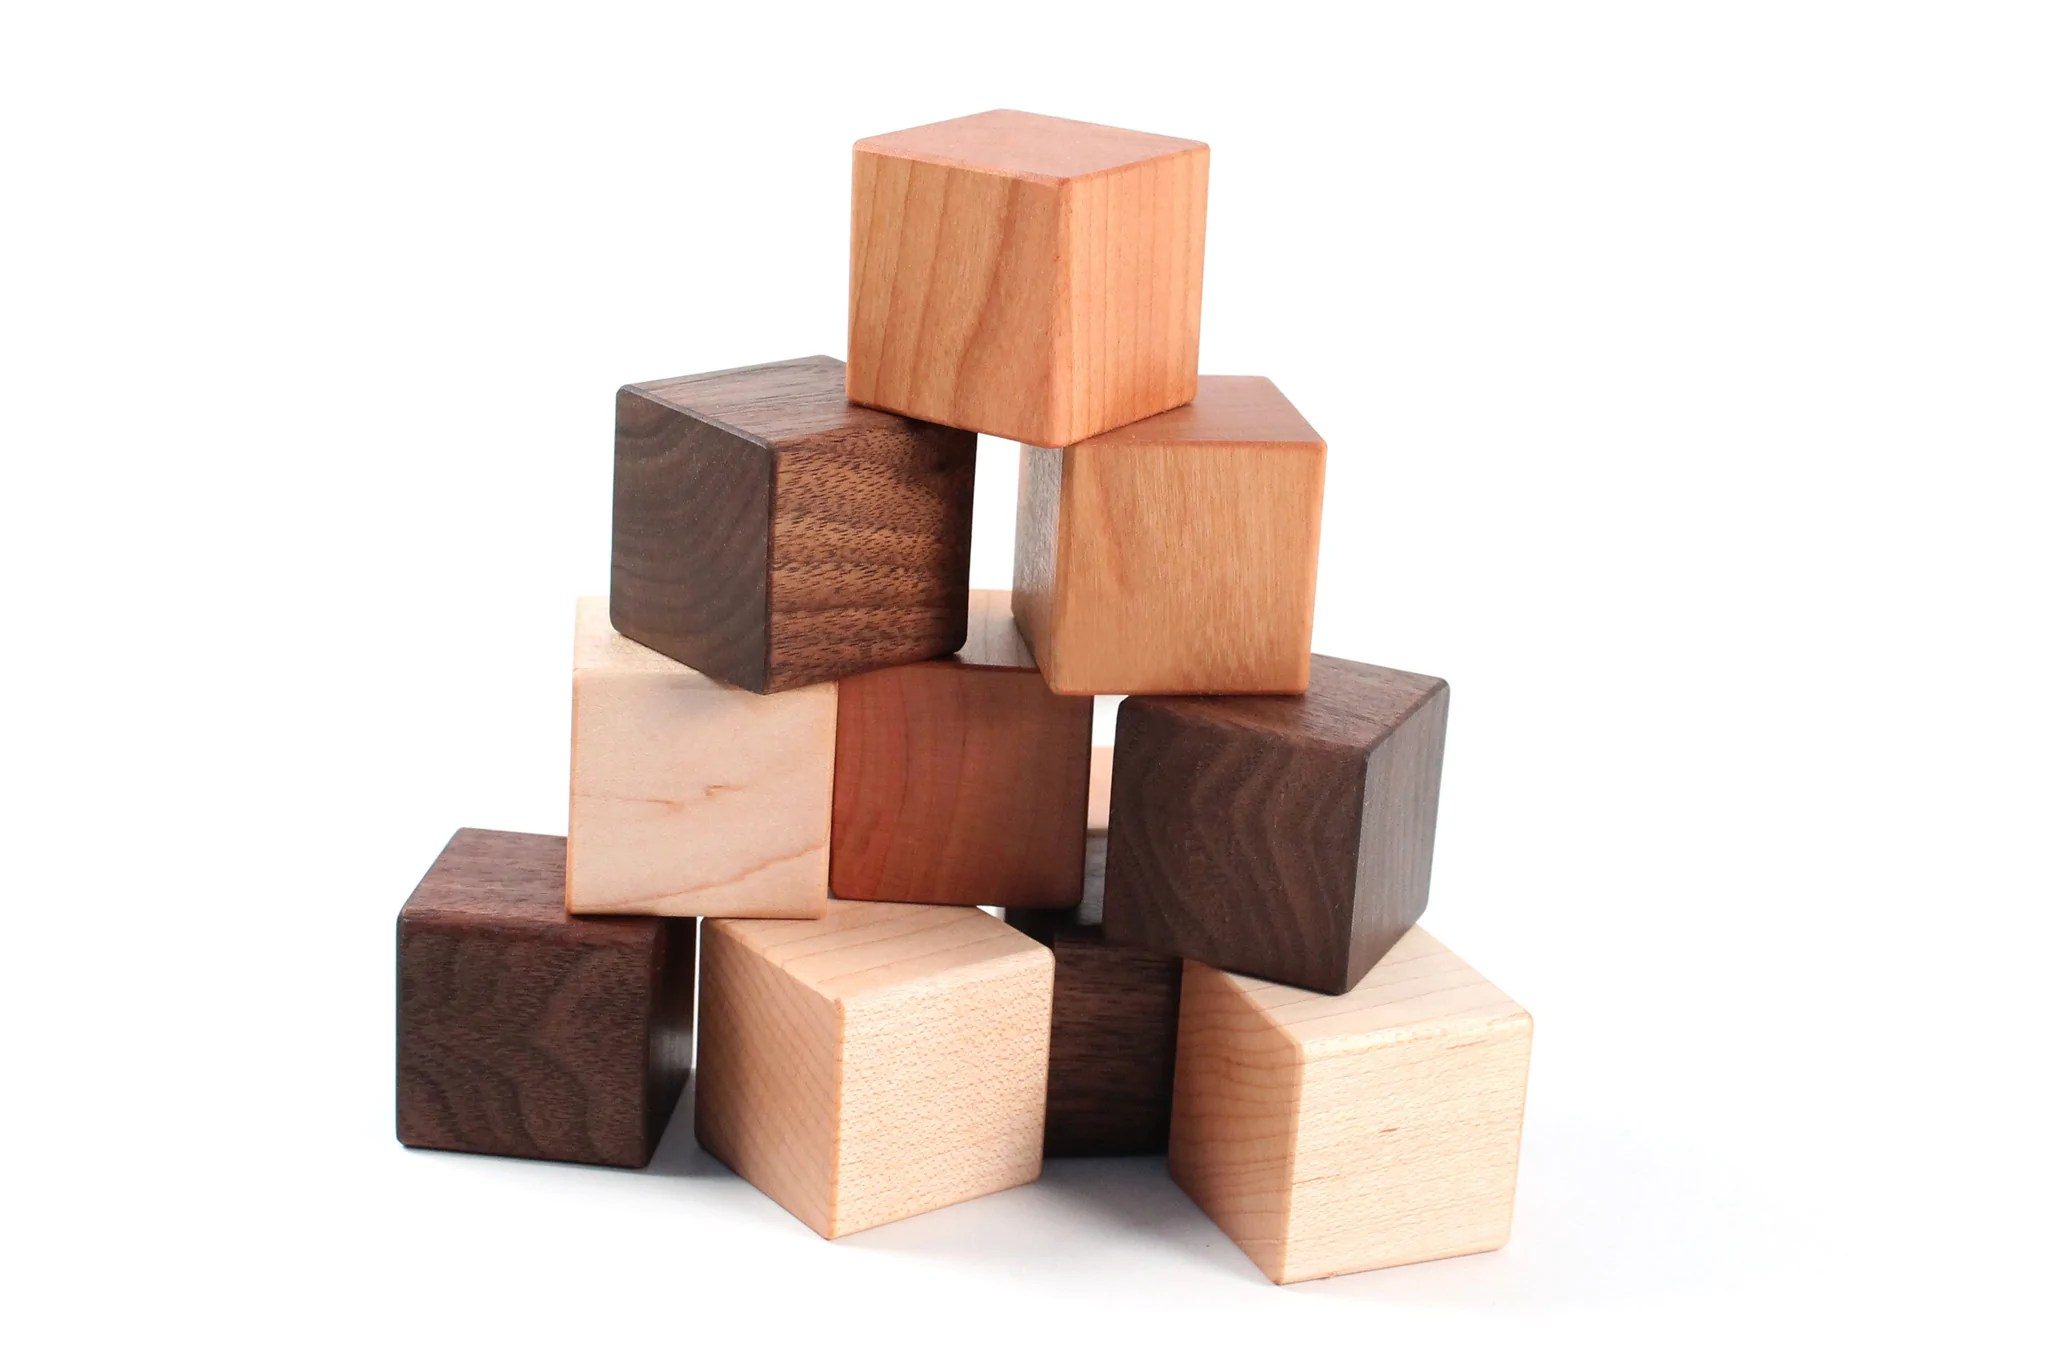 12 Piece Blocks Set Smiling Tree